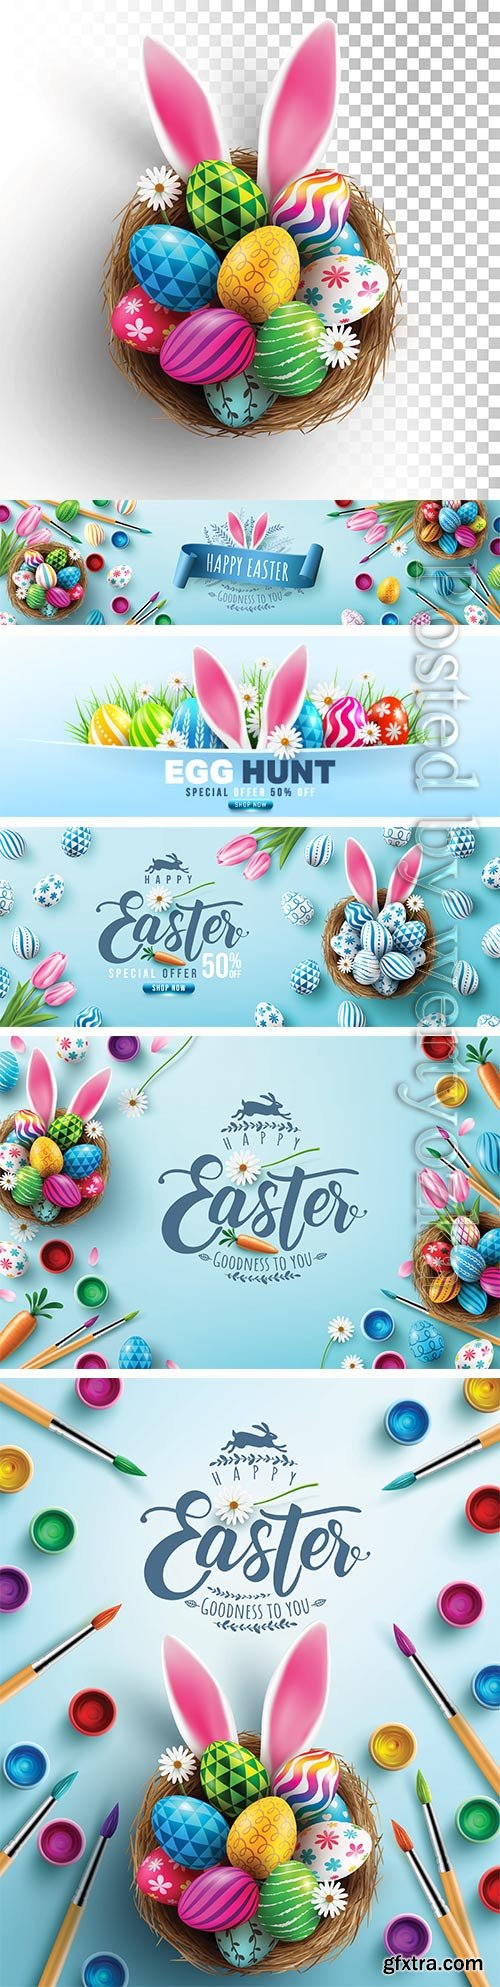 Easter poster and banner vector template with Easter eggs